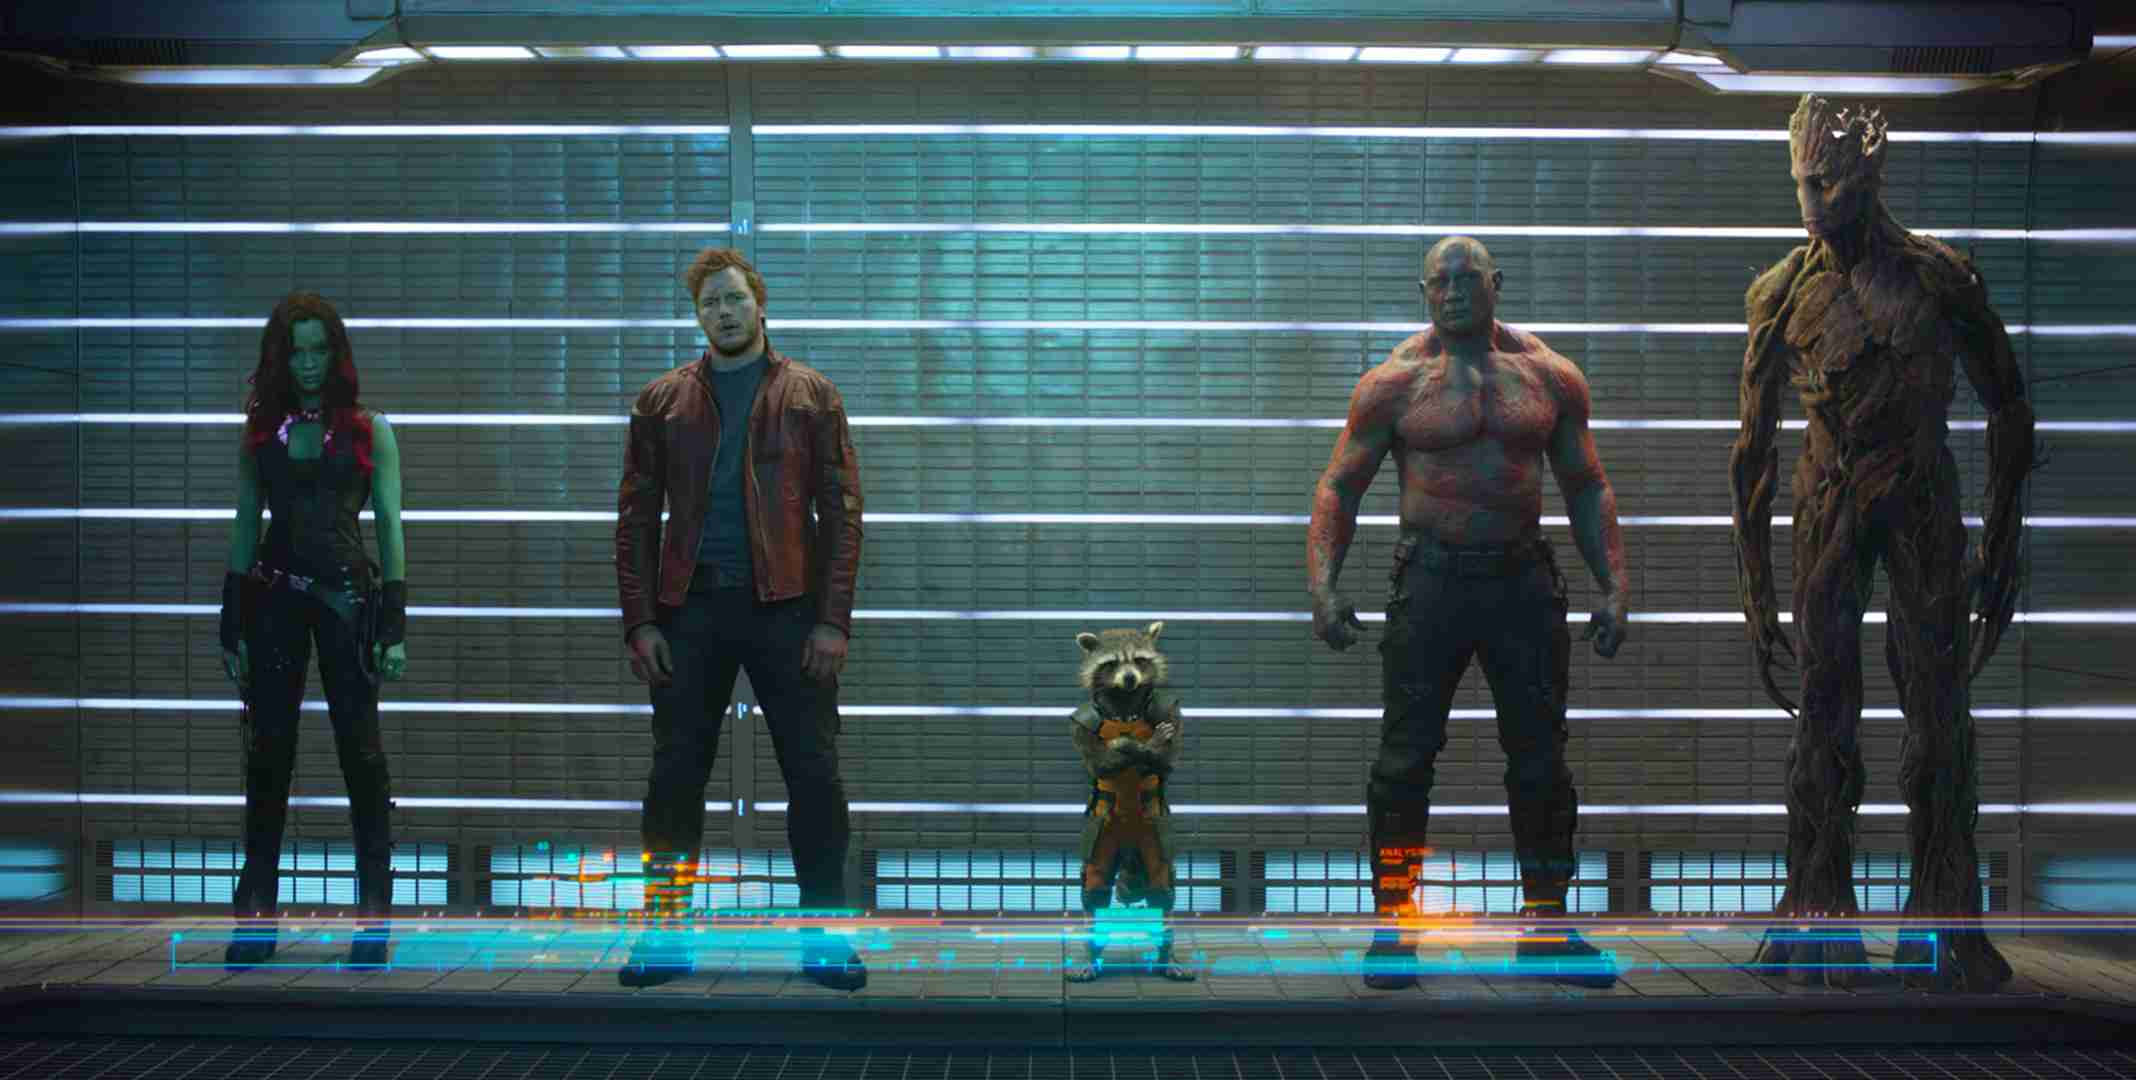 MARVEL'S 'GUARDIANS OF THE GALAXY': TEASER TRAILER AND NEW STILLS RELEASED | The Arts Shelf